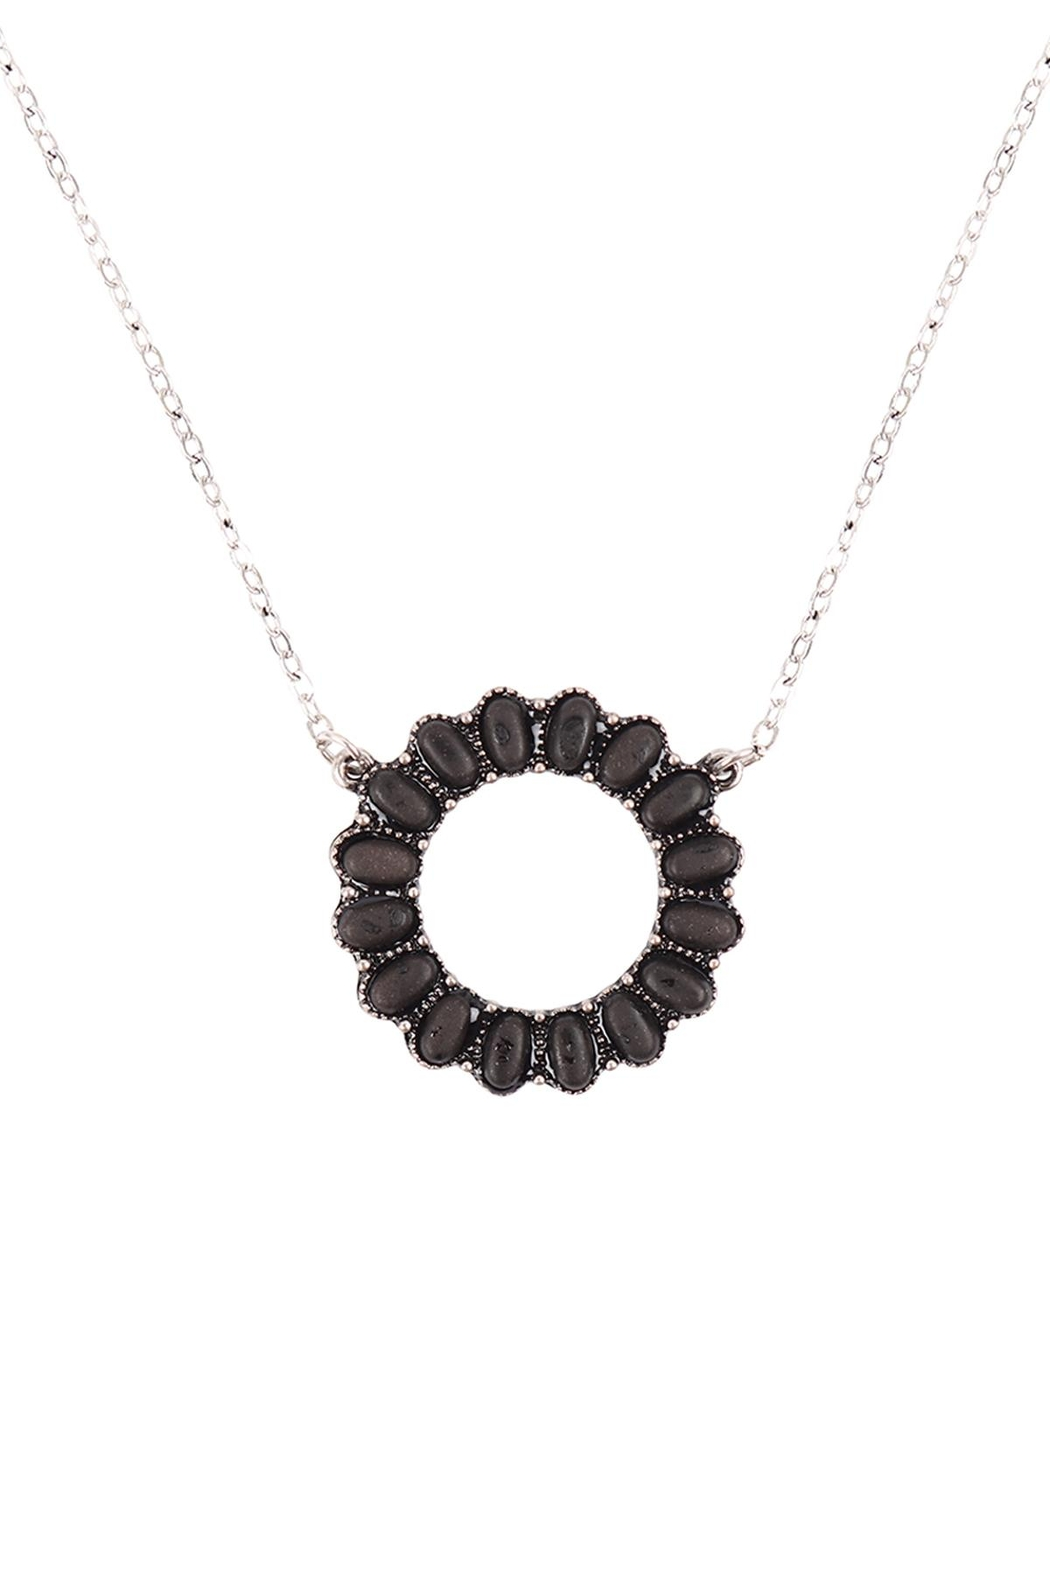 Riah Fashion Open-Circle-Natural-Ova- Ston- Pave-Pendant-Necklace-And-Earring-Set - Main Image